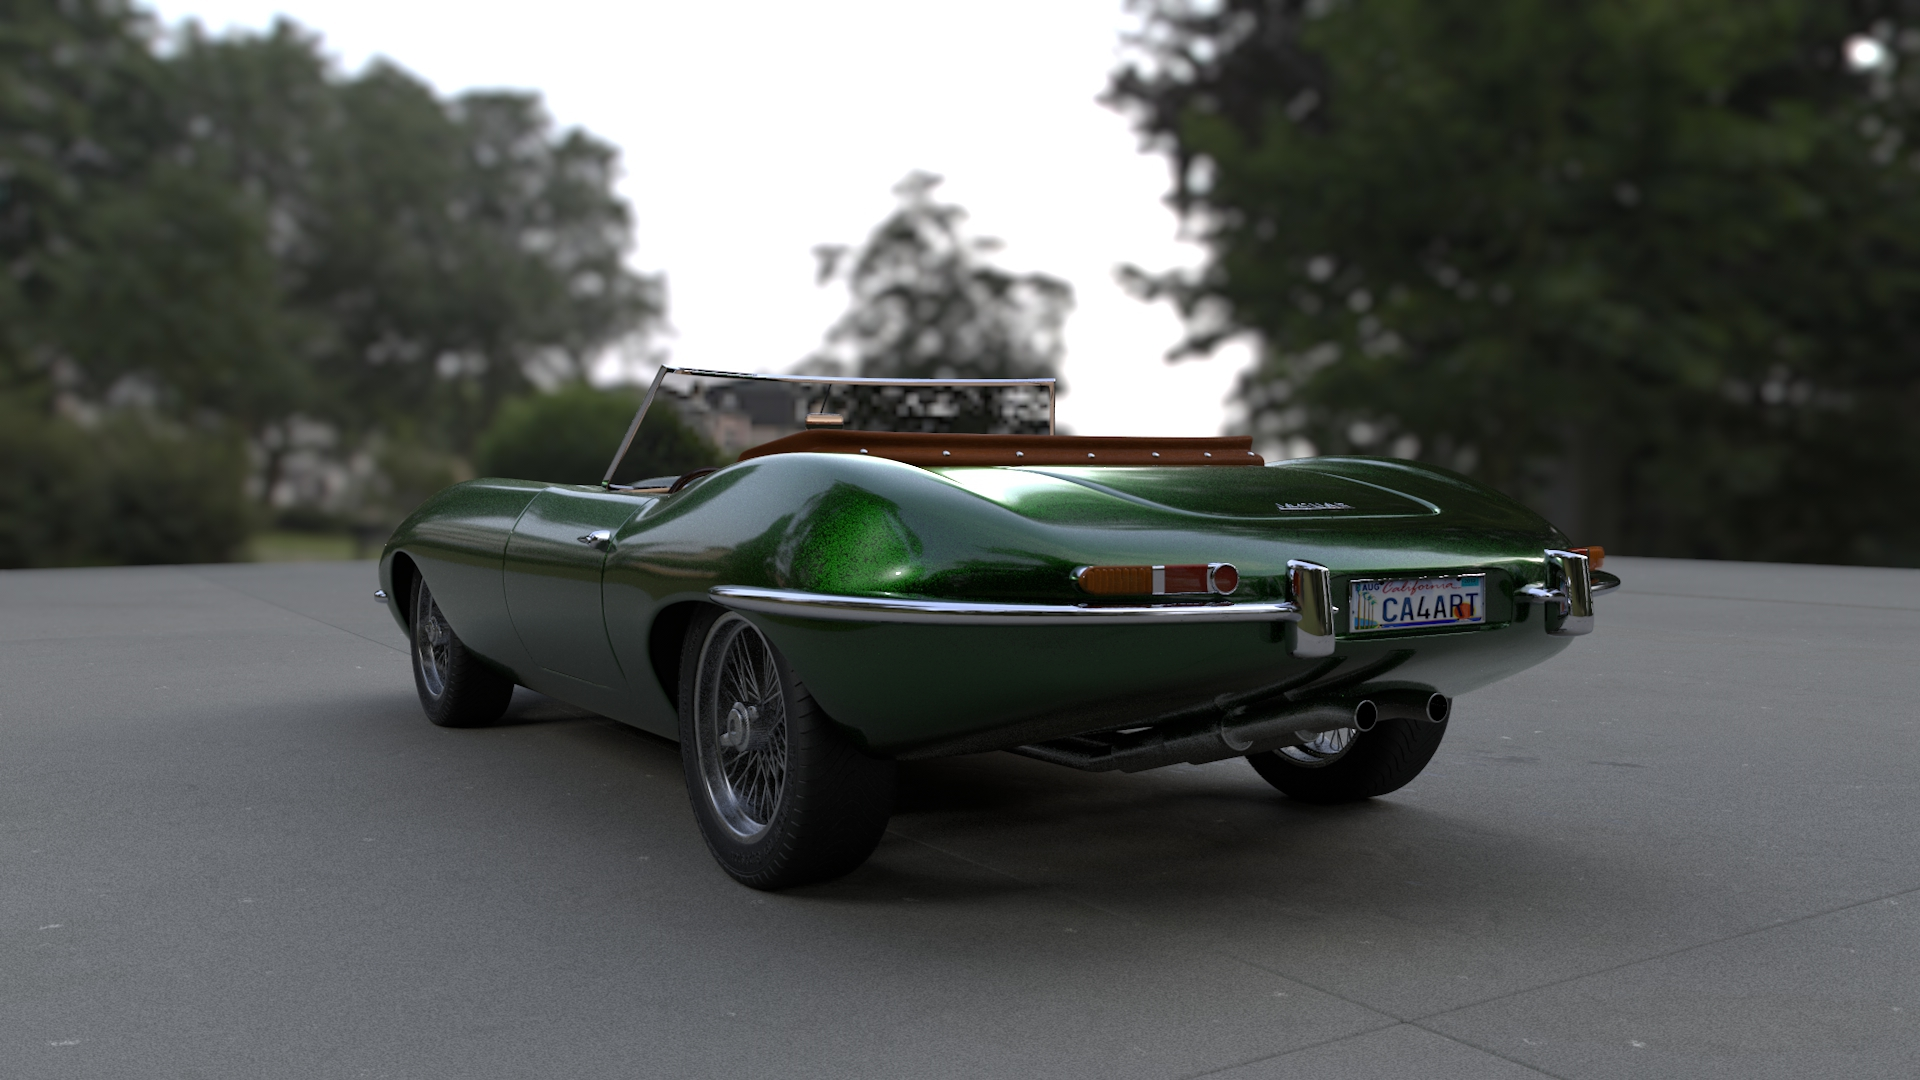 [Bild: jaguargreensingle2kcamms46.jpg]